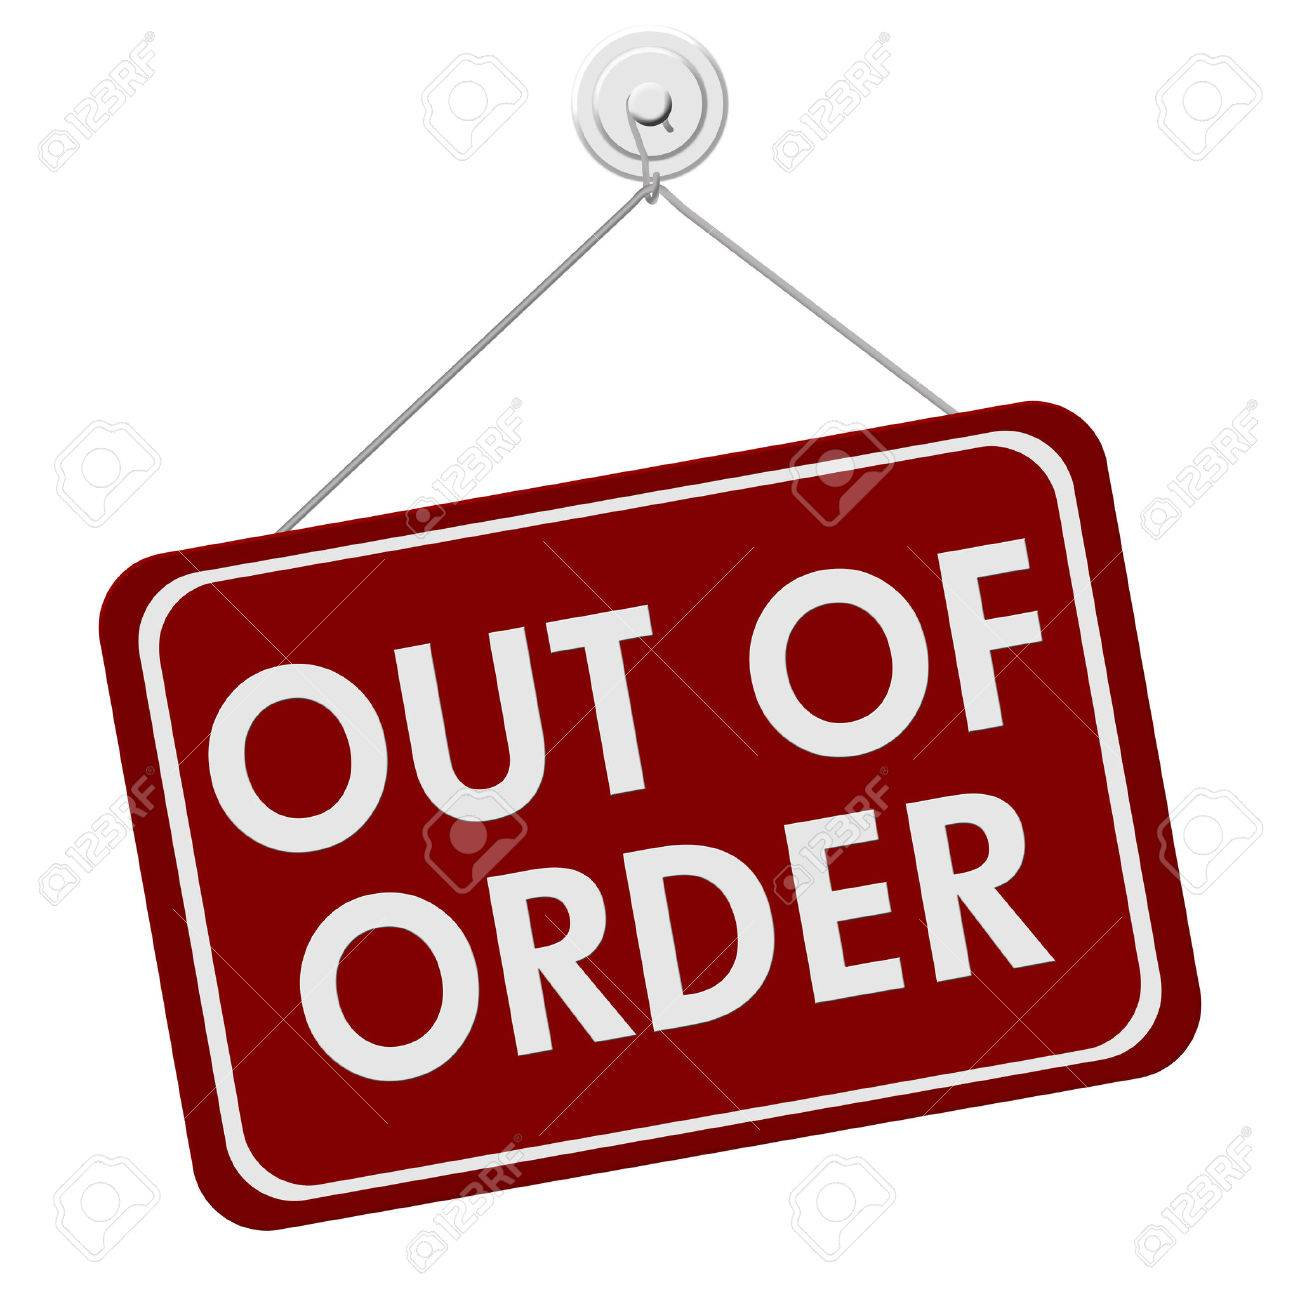 Out of order clipart 6 » Clipart Station.